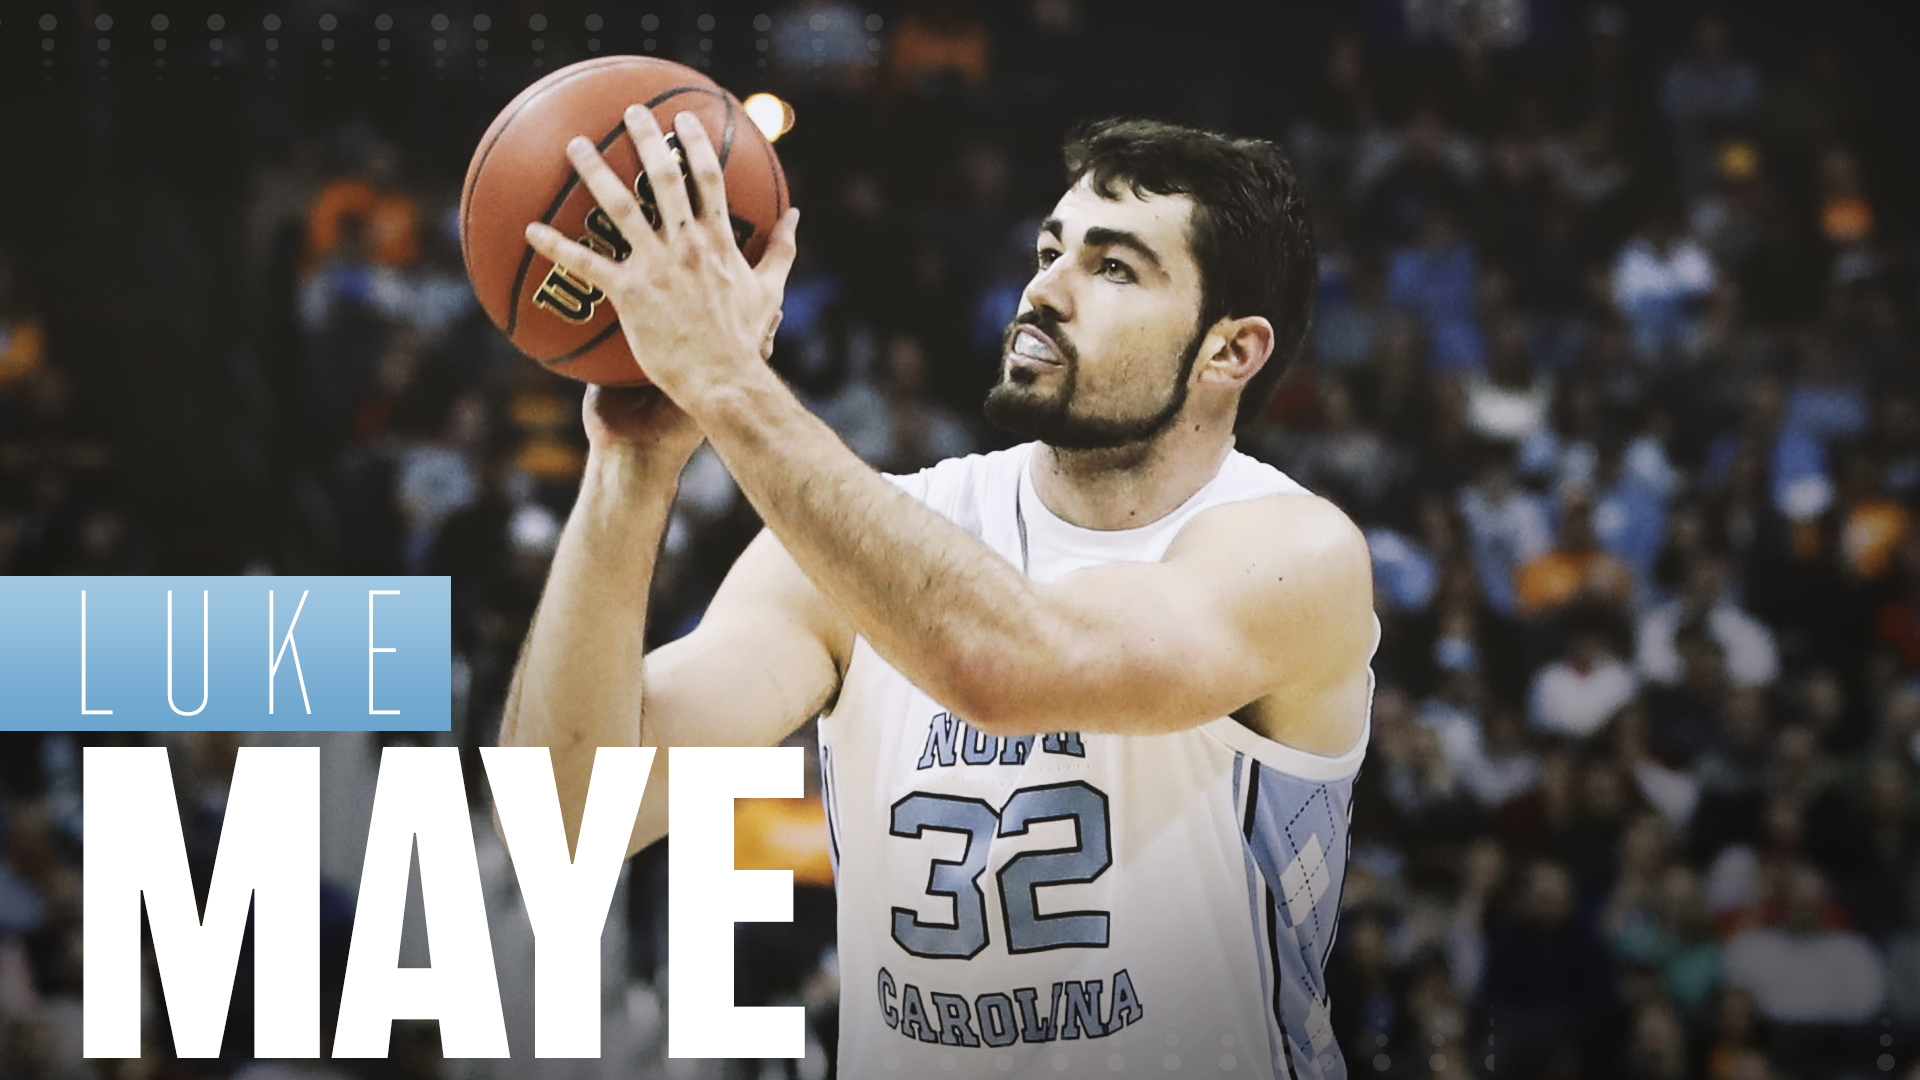 2019 NBA Draft Profile: Luke Maye, UNC